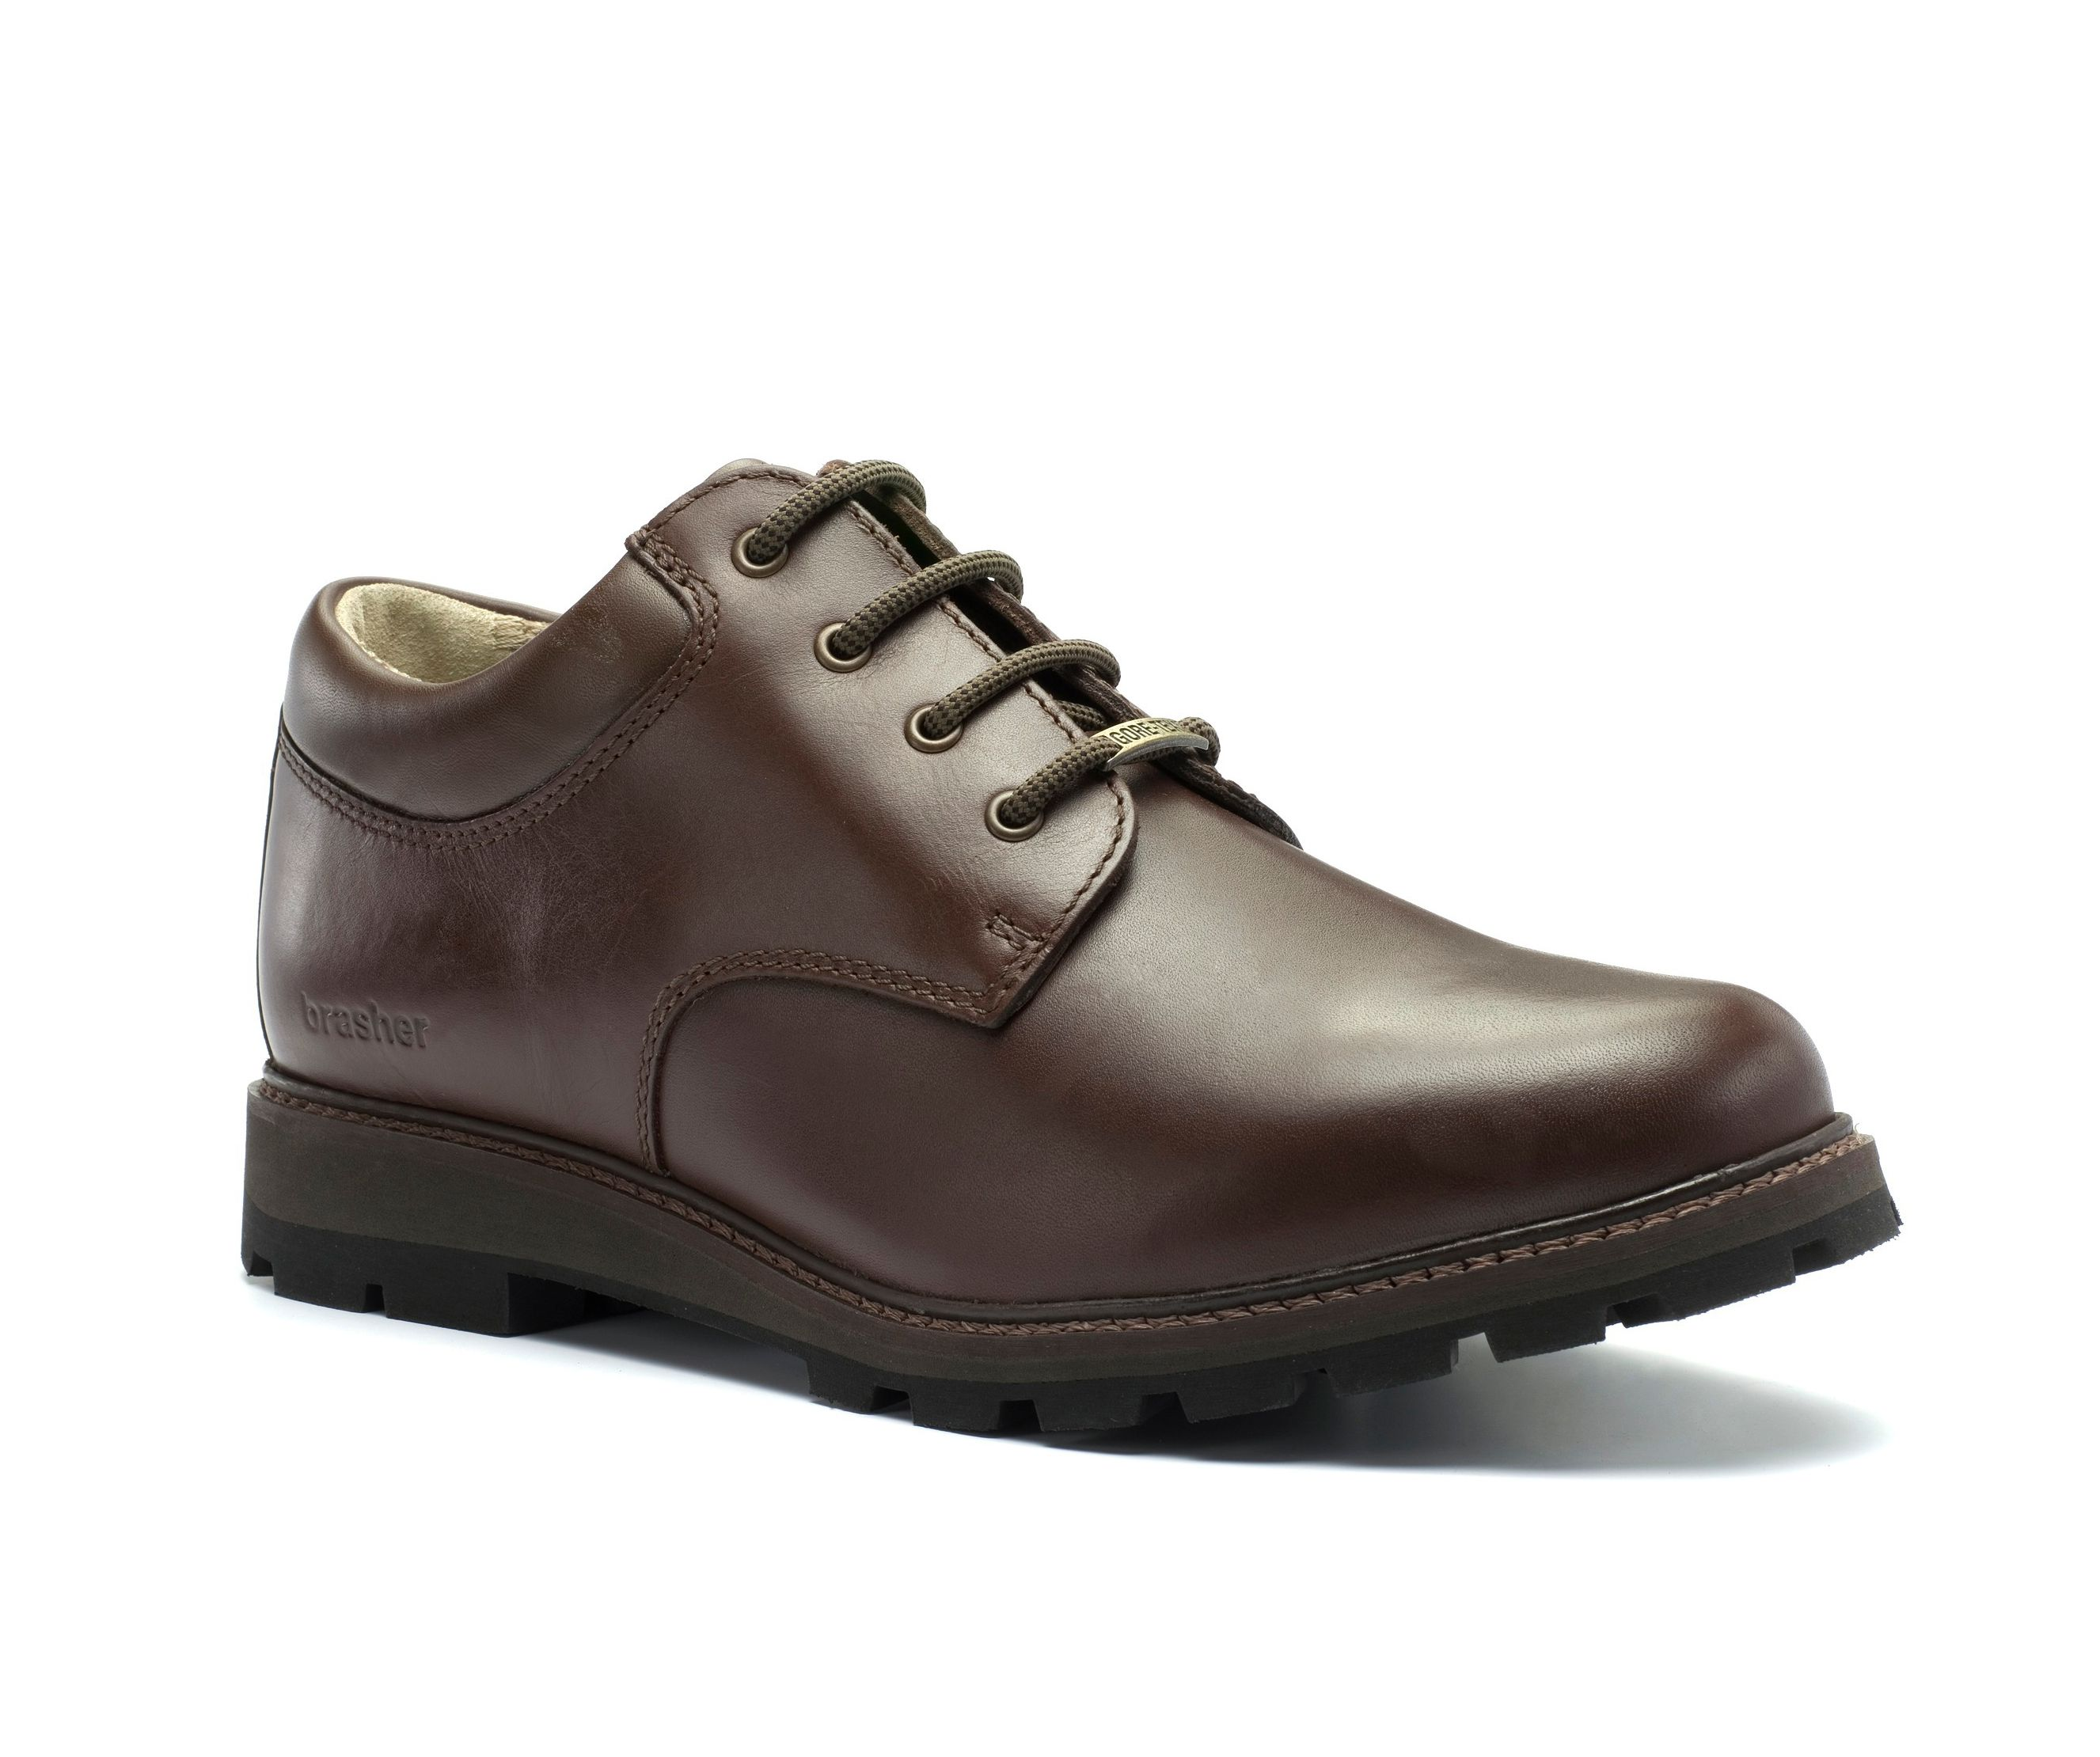 a427a081 The best men's walking boots - Brasher boots review uk dating